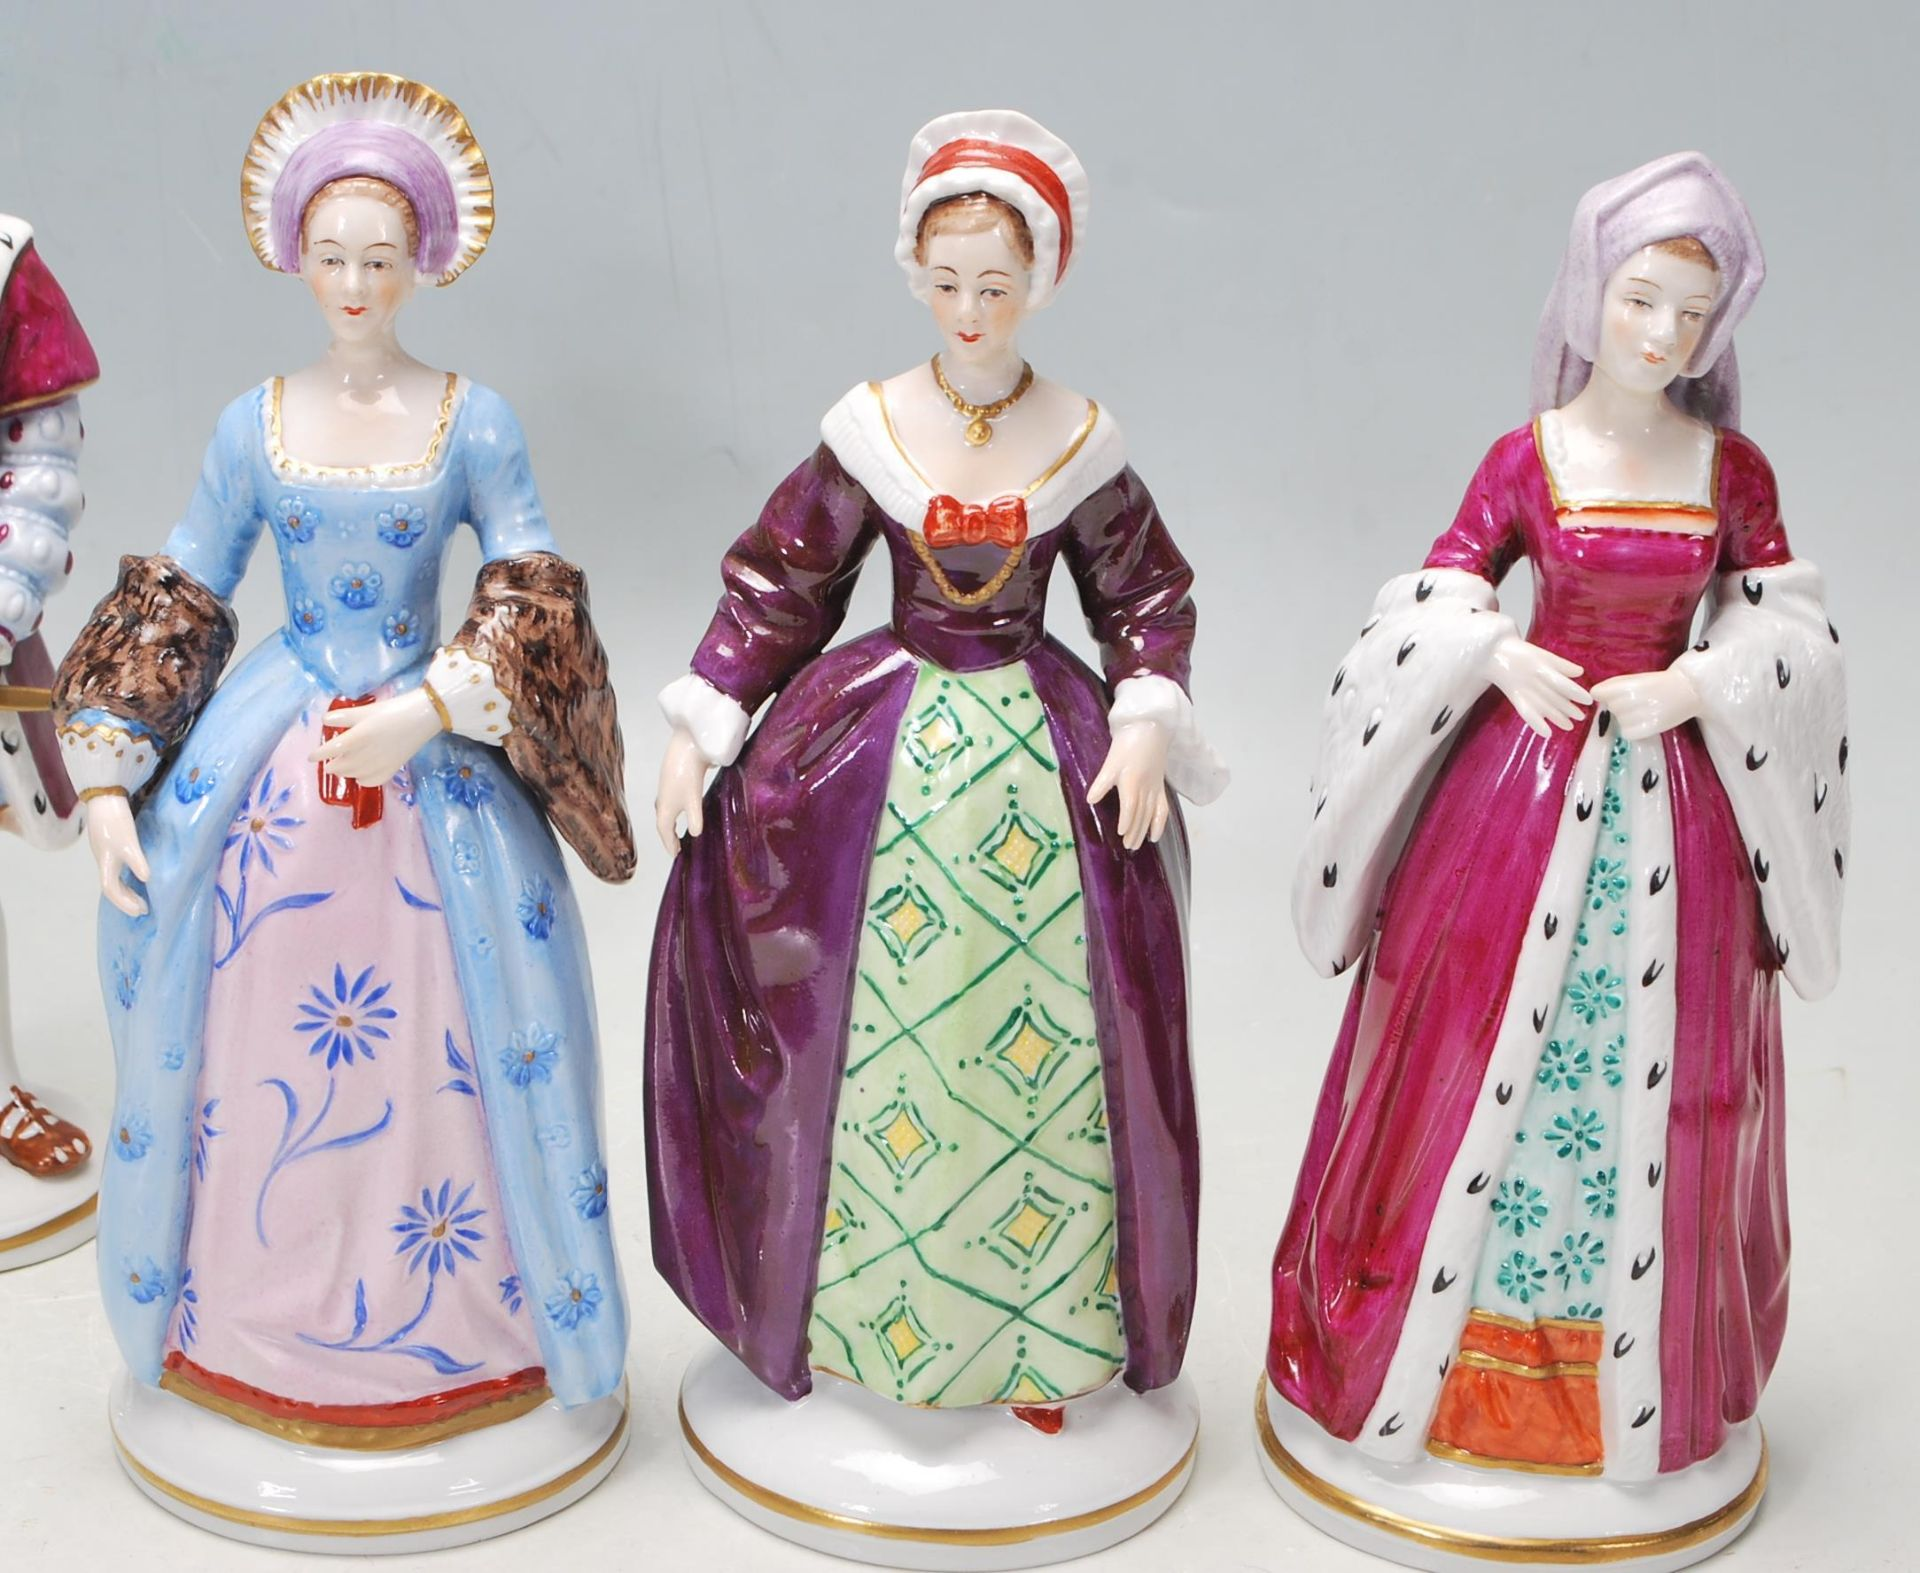 COLLECTION OF SEVEN SITZEDORF CERAMIC PORCELAIN FIGURINES OF HENRY VIII AND HIS SIX WIVES - Image 4 of 8